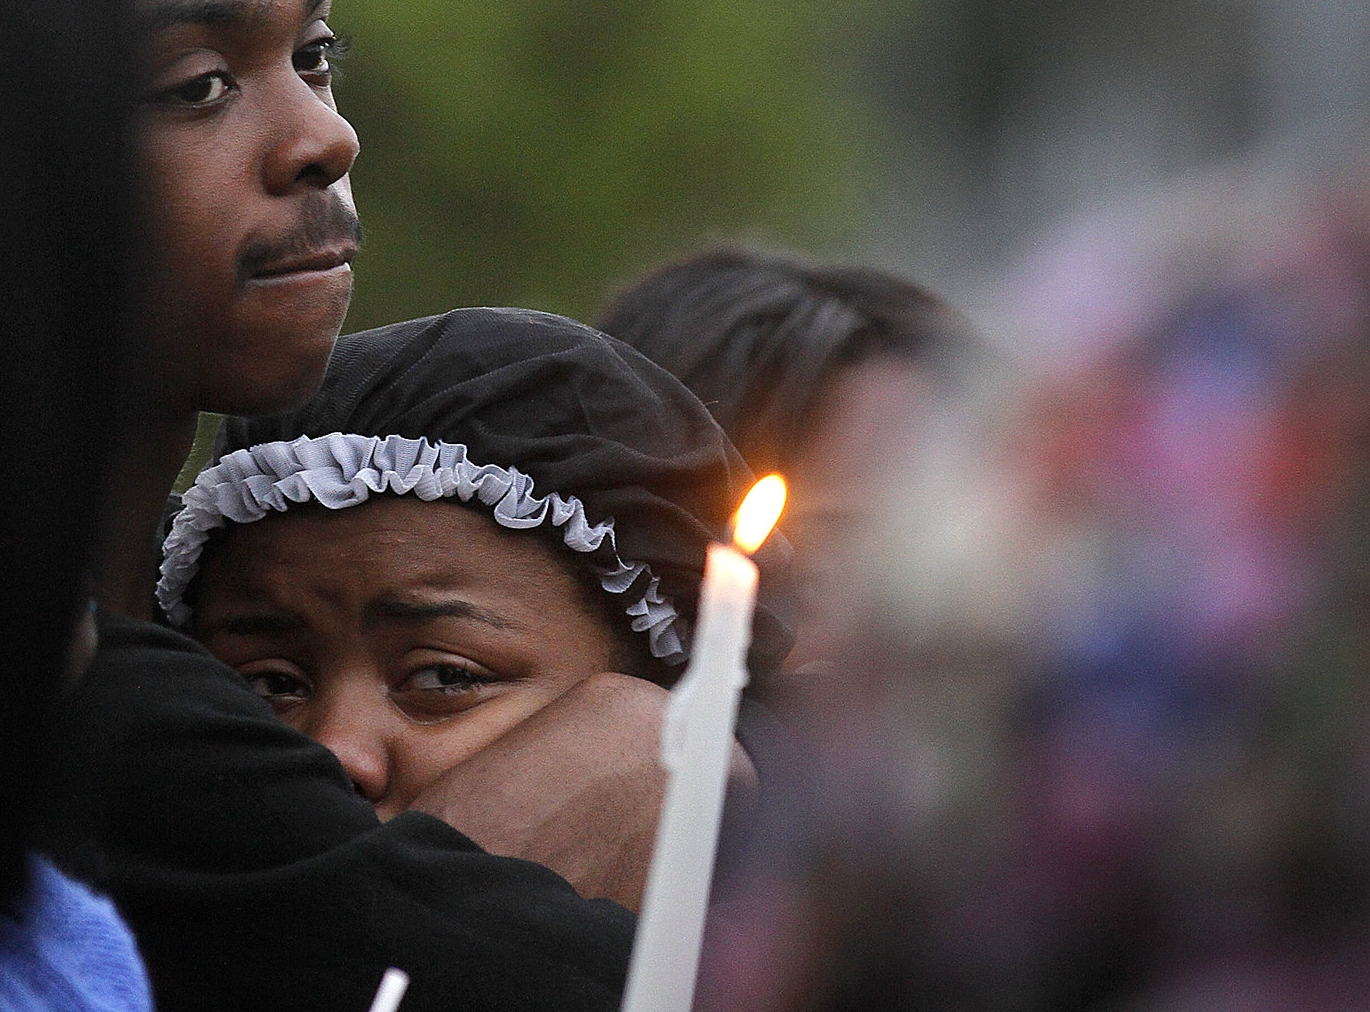 guns kill nearly 33,000 Americans every year - Yet, it's a statistic that we have grown numb to hearing. To make people care again, we had to make gun violence personal.